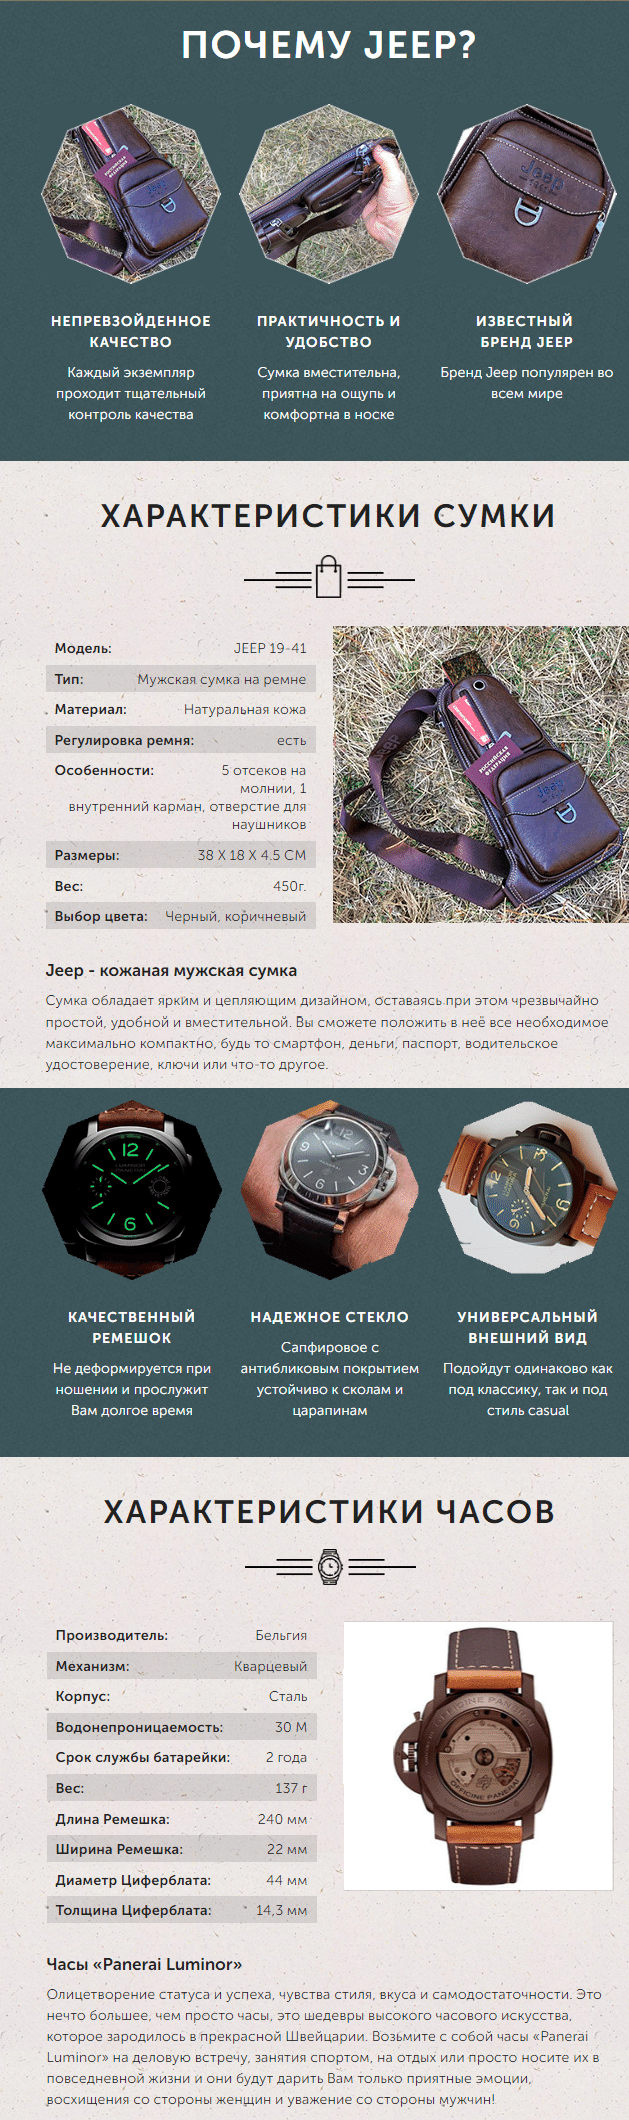 Сумка Jeep + часы Panerai Luminor купить